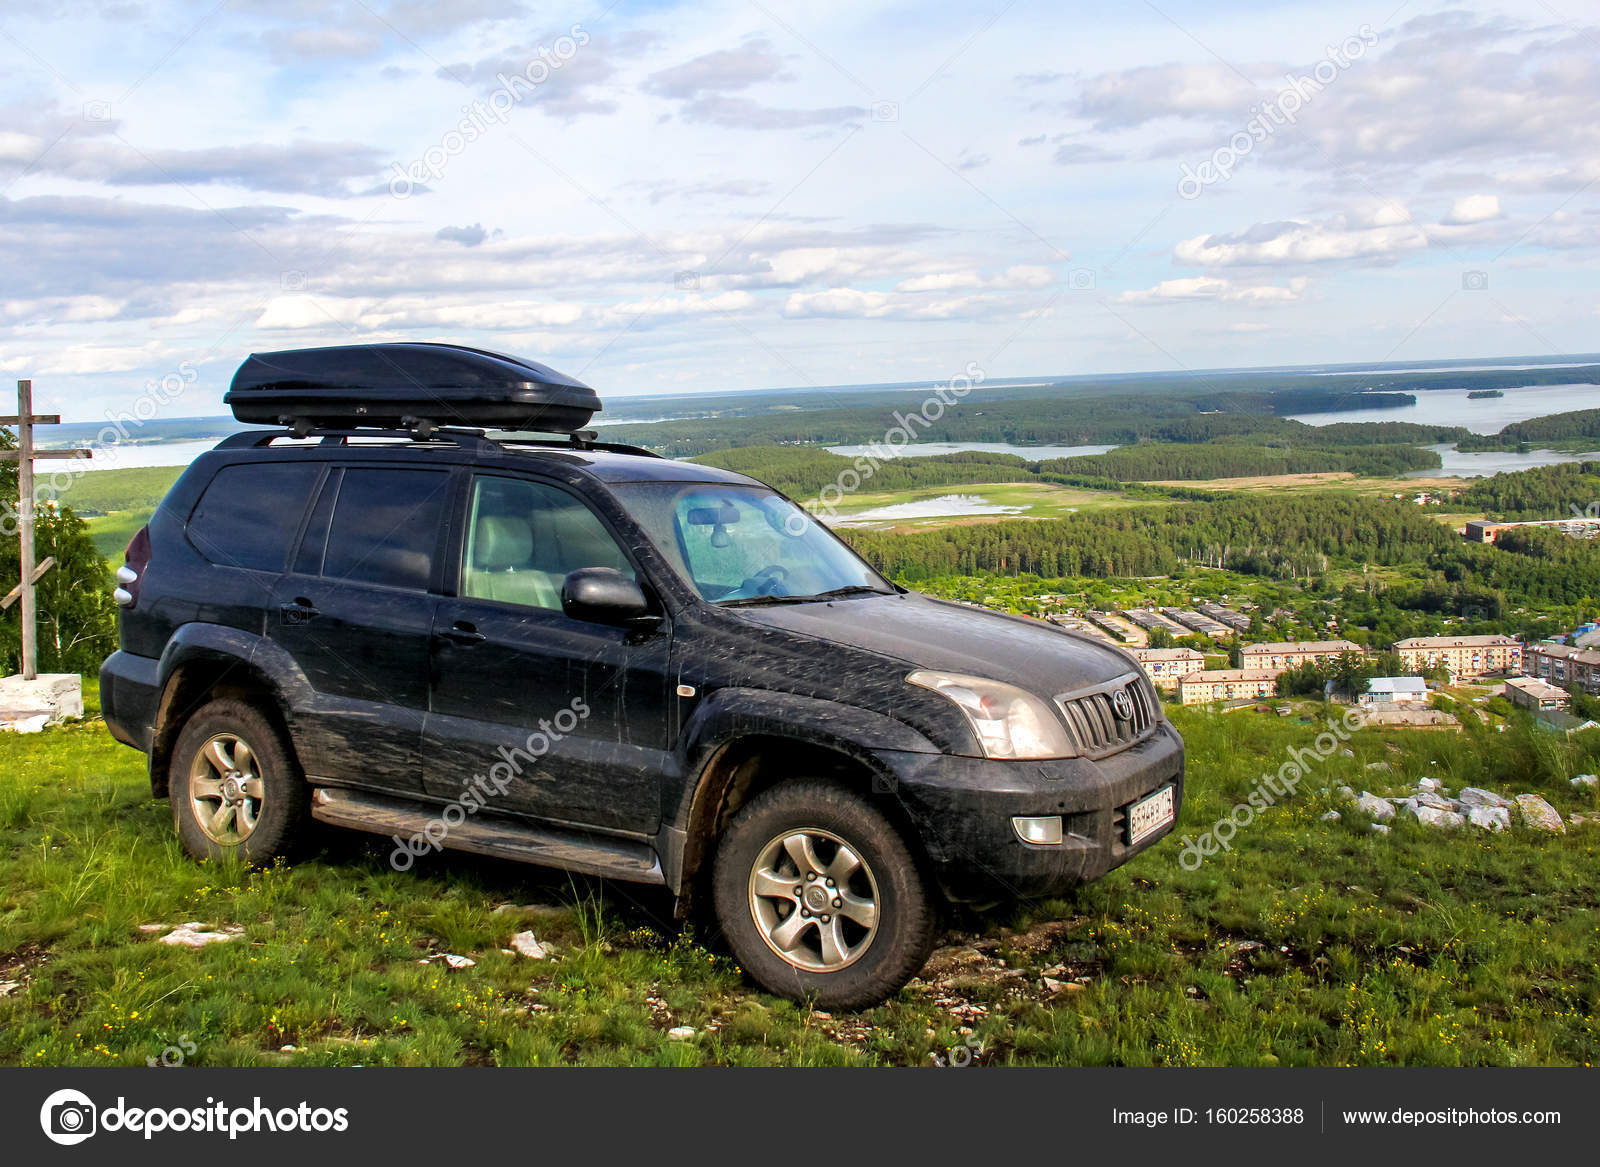 Toyota Land Cruiser Prado 120 Stock Editorial Photo Artzzz Chelyabinsk Region Russia July 8 2017 Black Off Road Car At The Countryside By